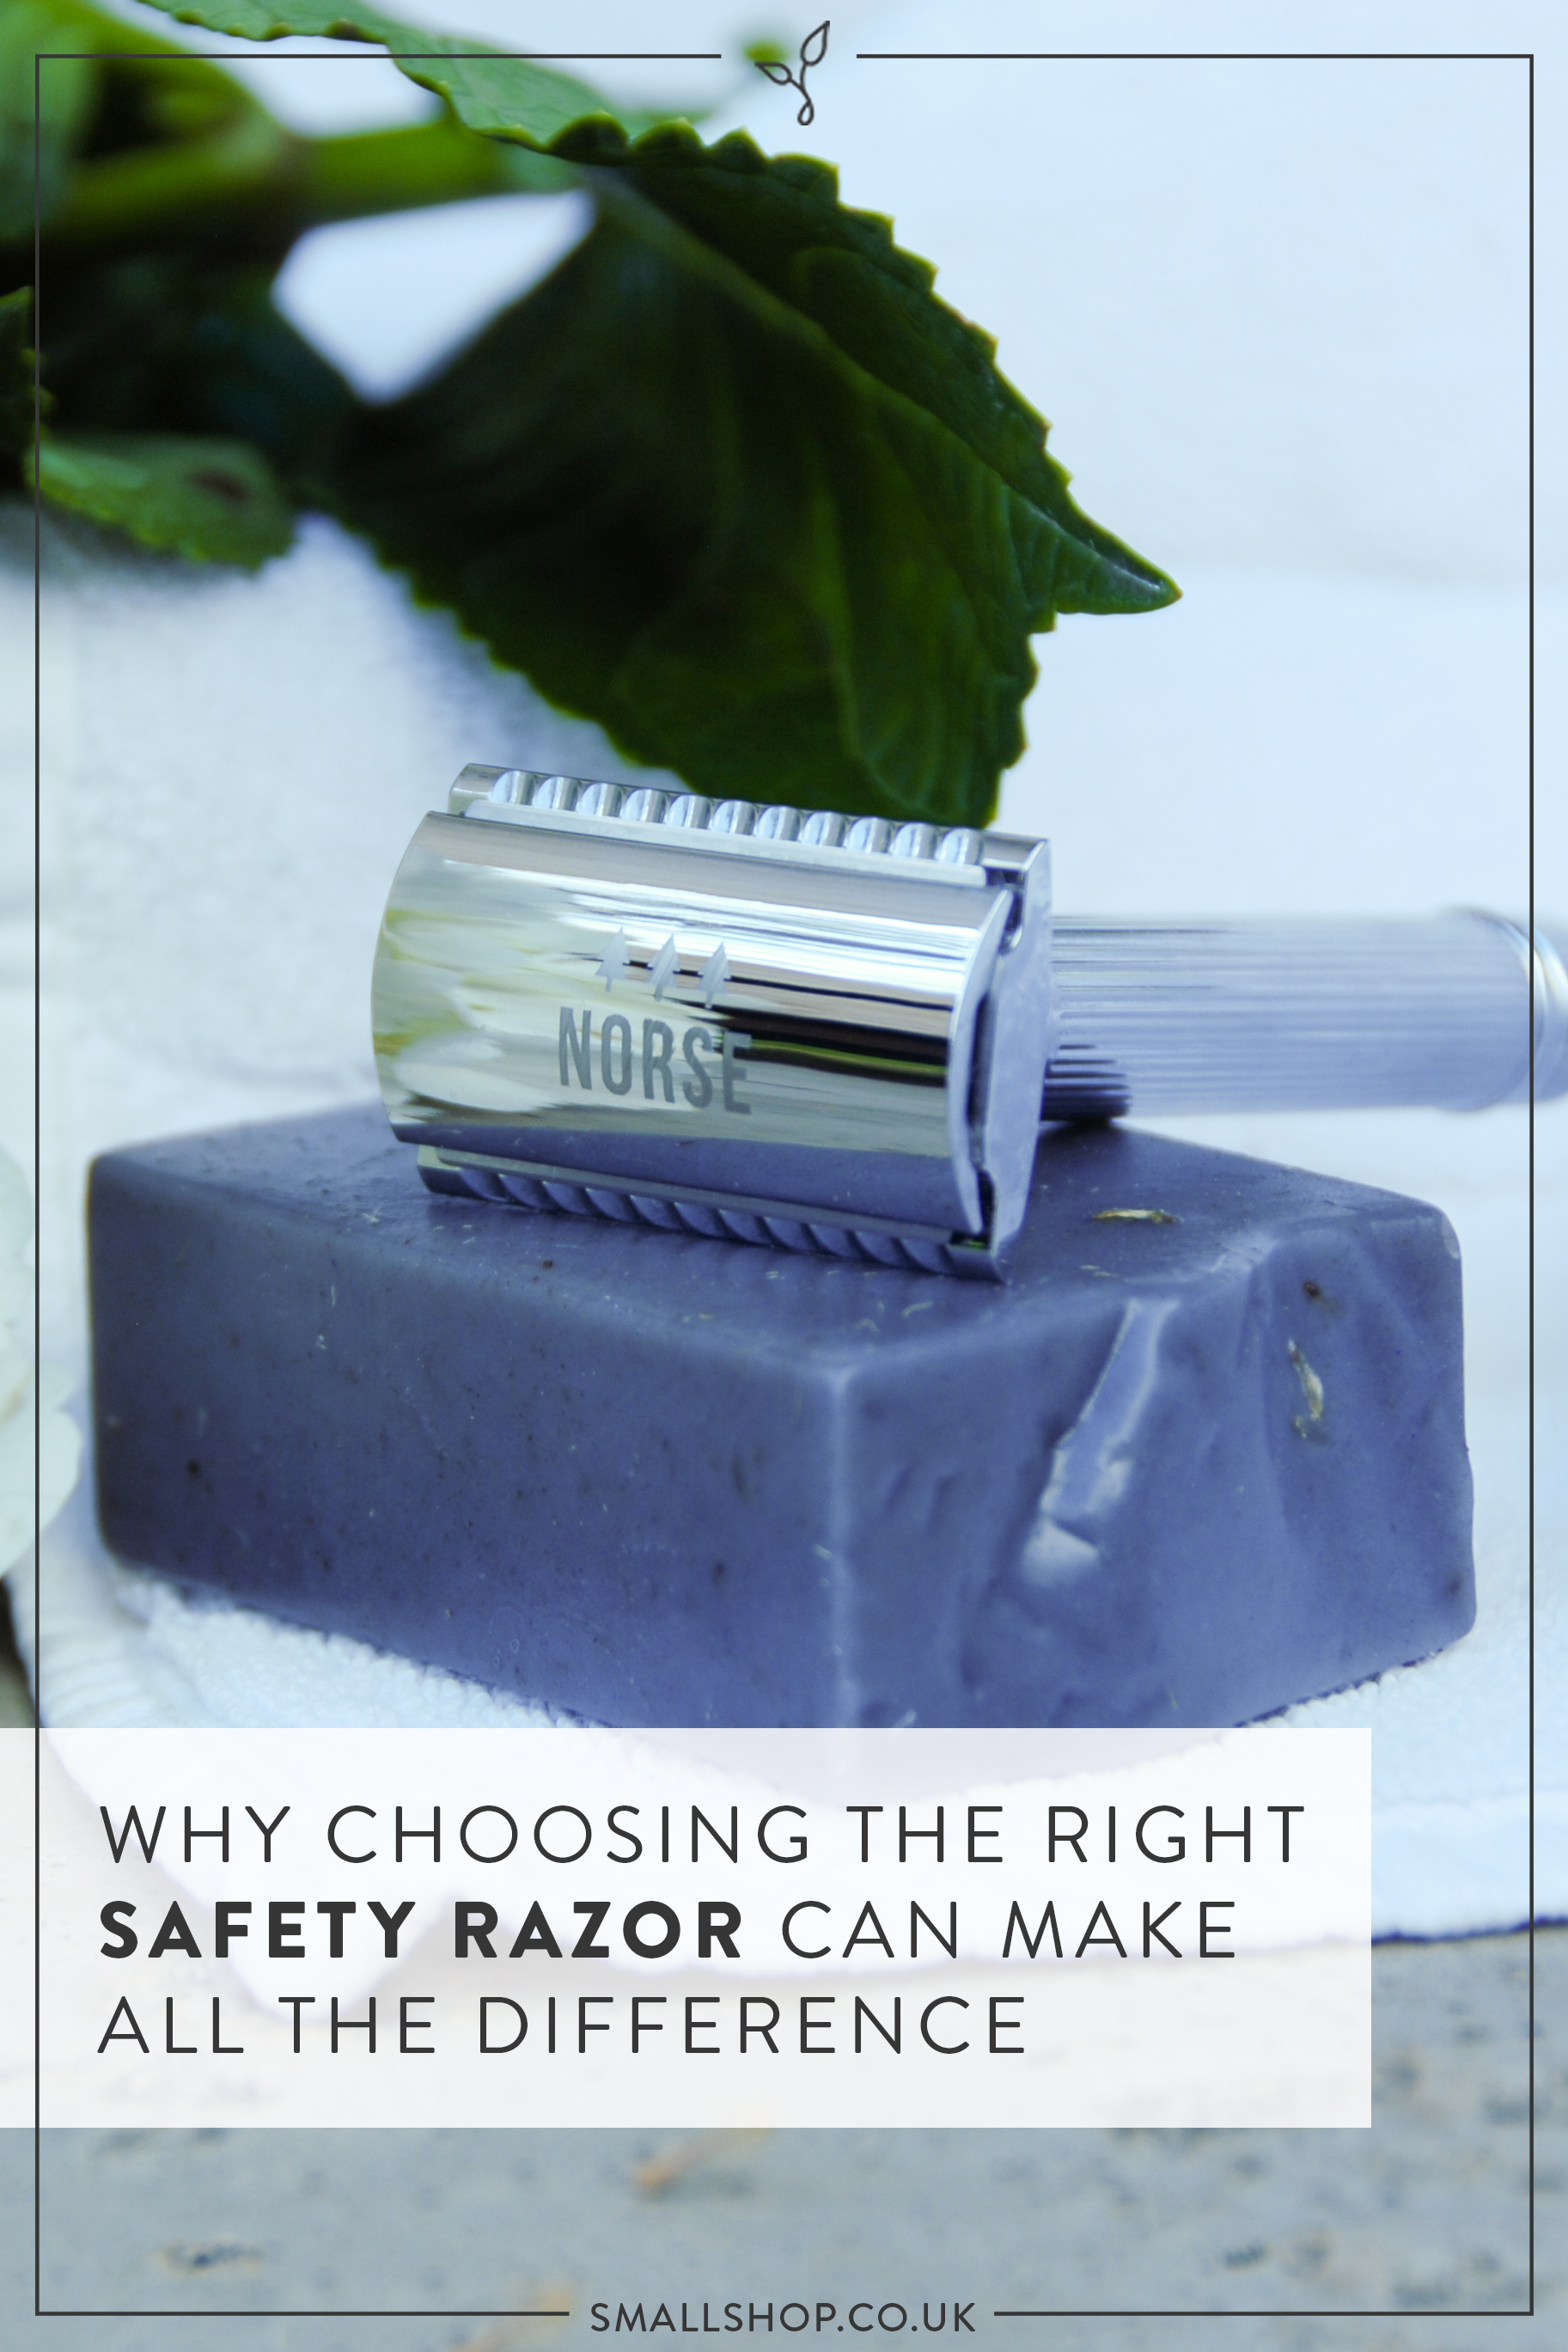 Why choosing the right safety razor can make all the difference